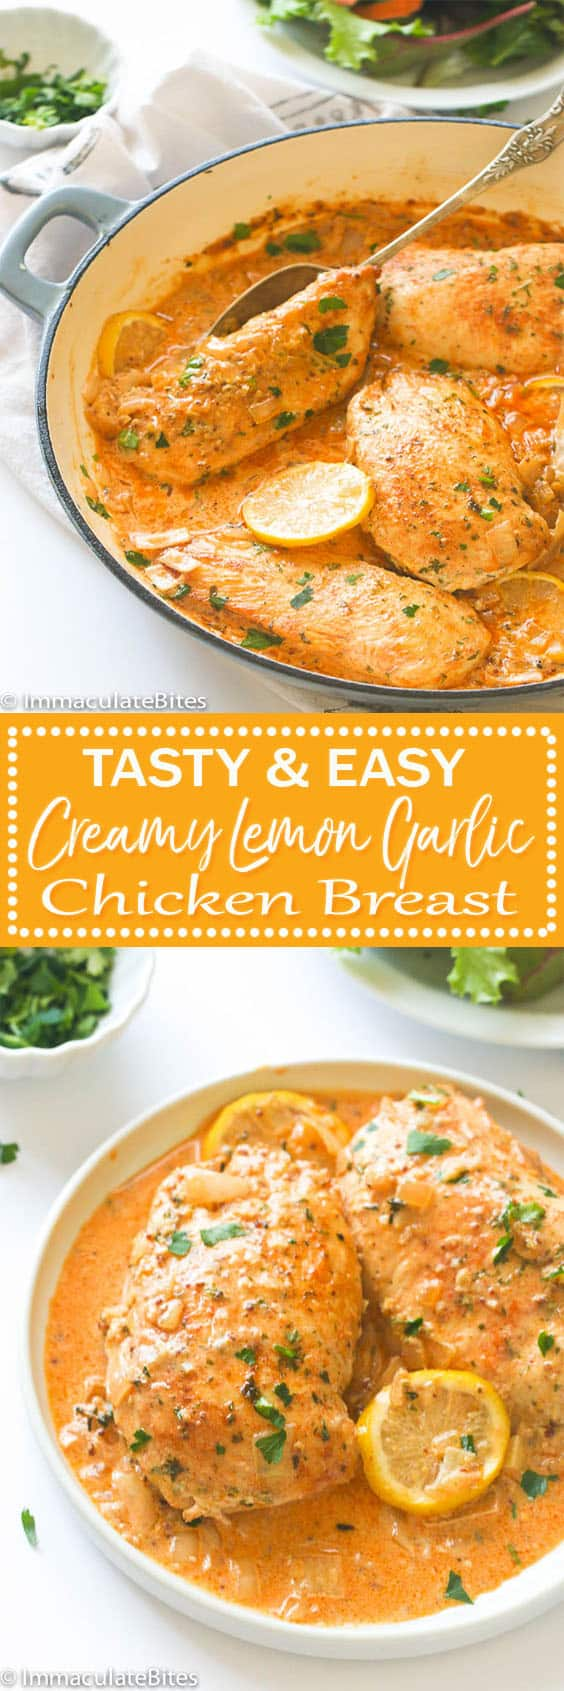 creamy lemon garlic chicken breast